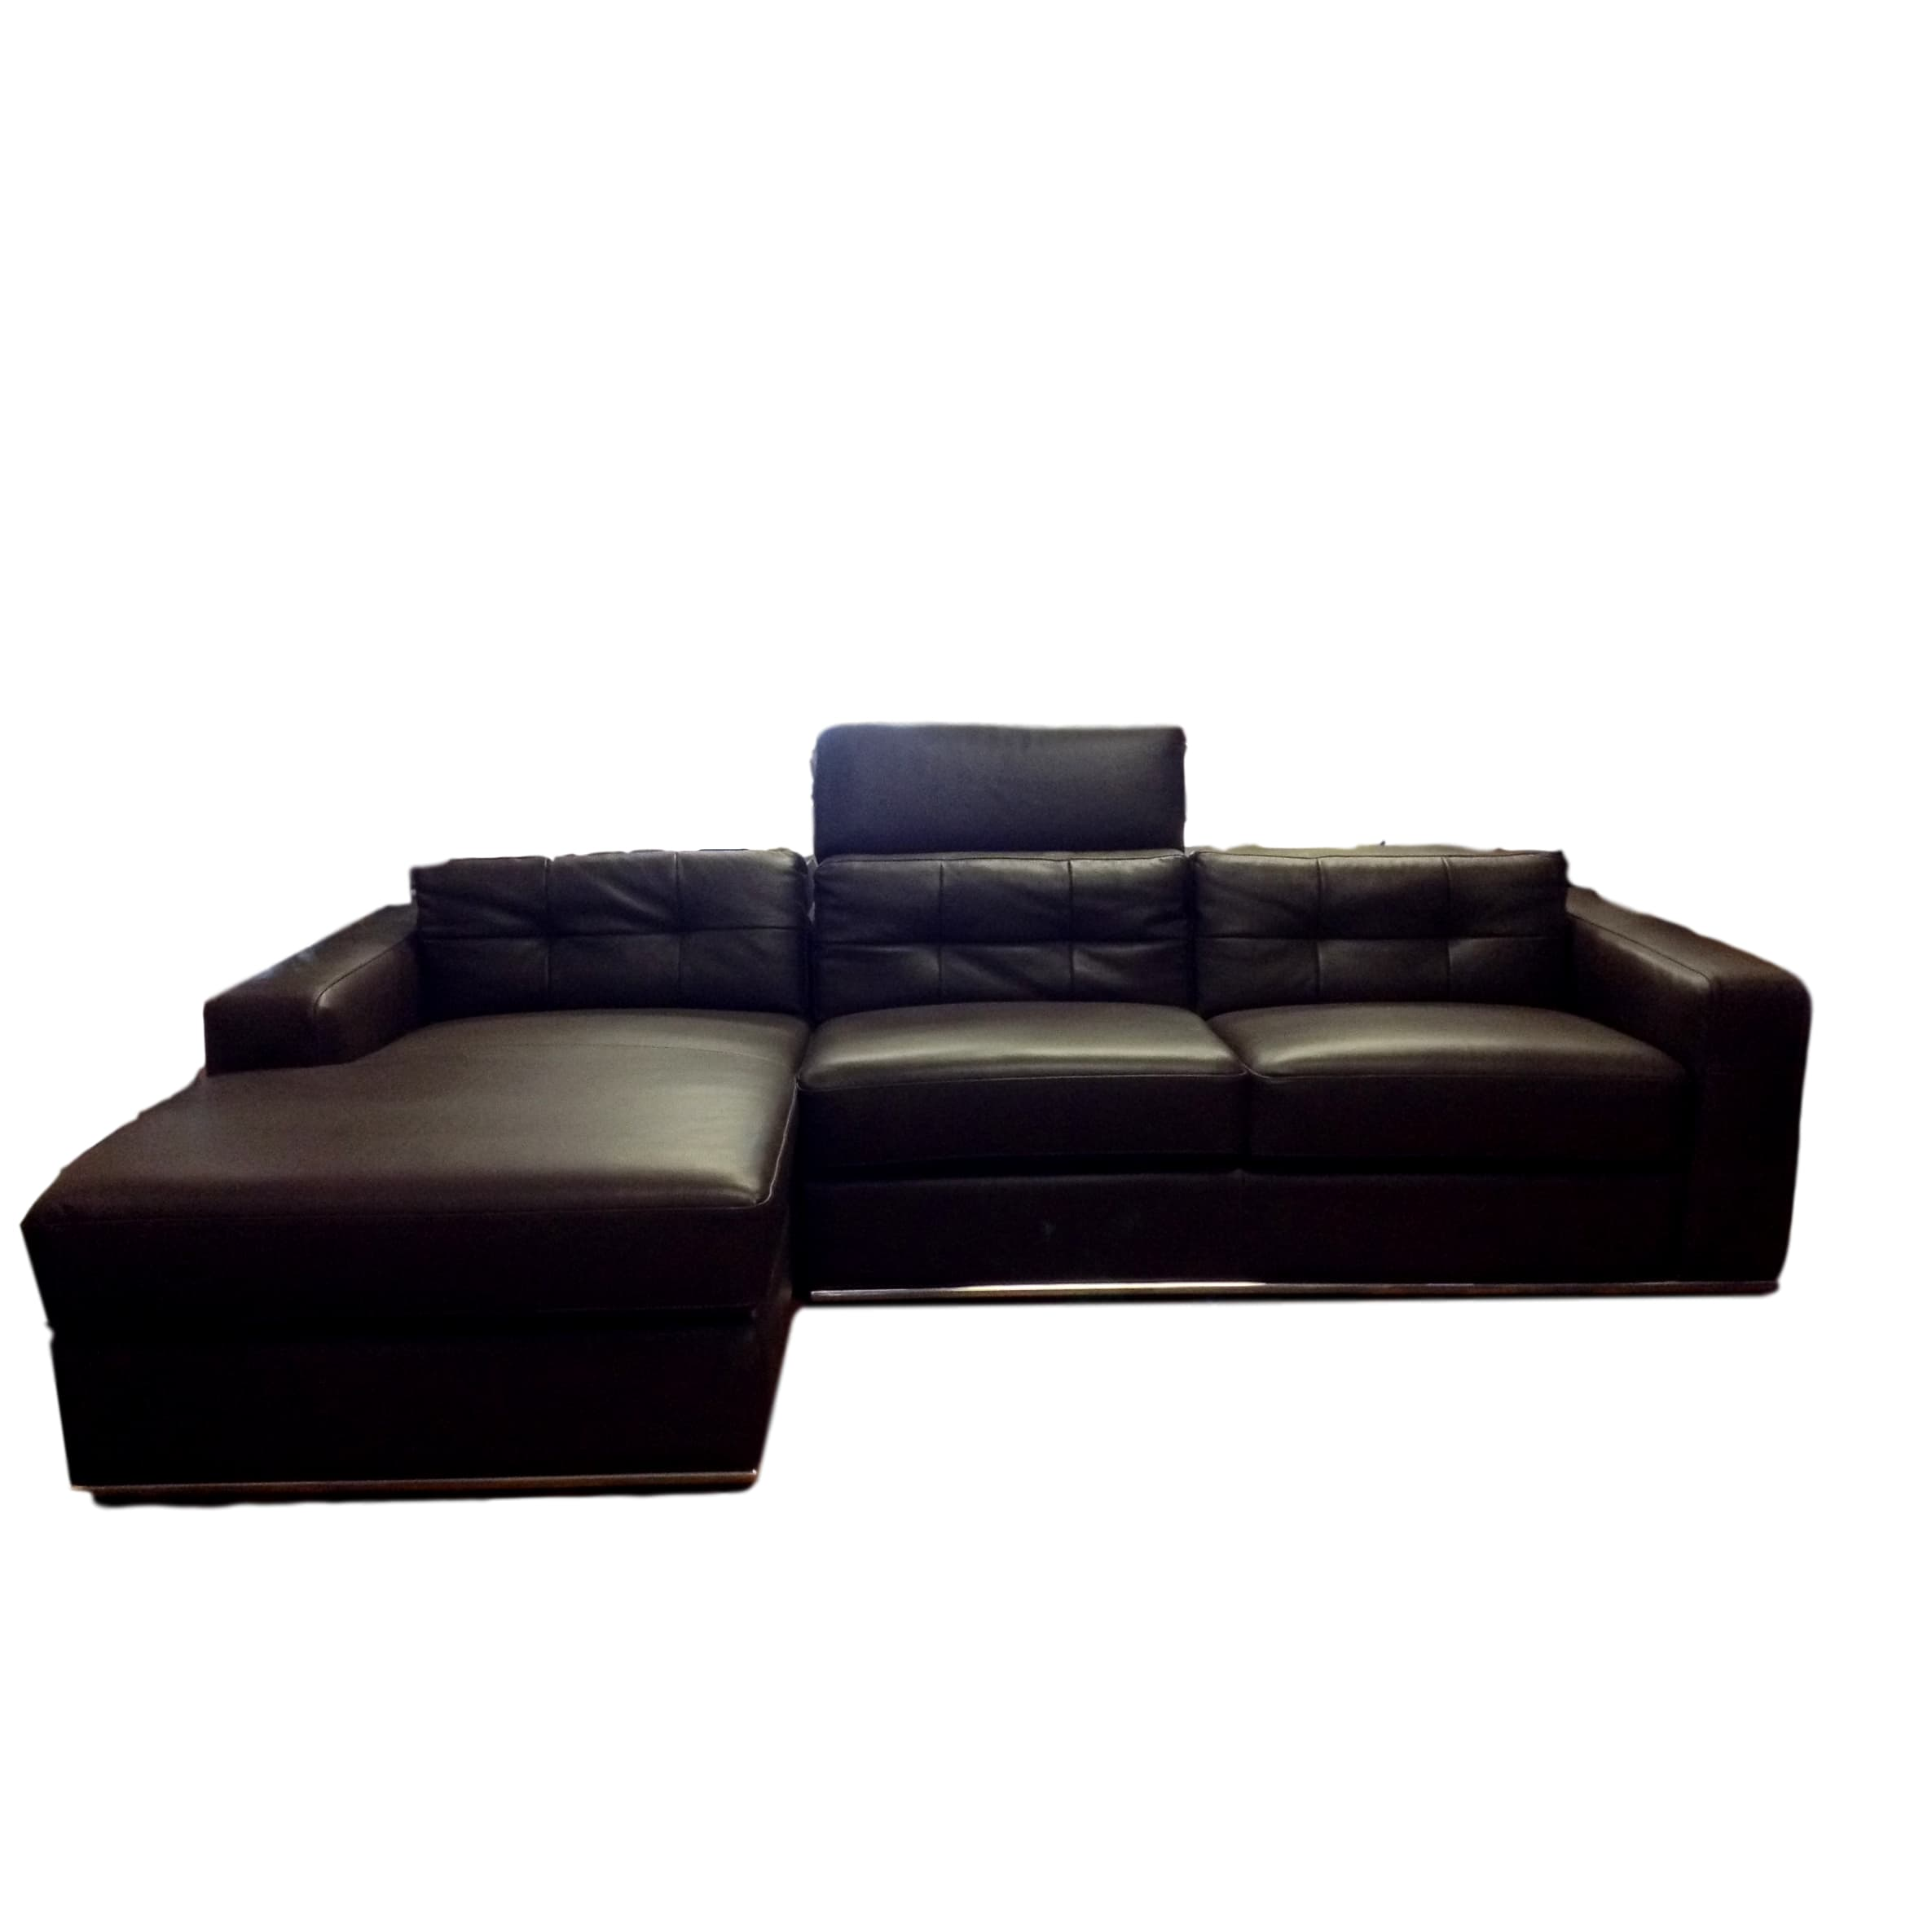 tufted of lovely black angled sectional sofa leather